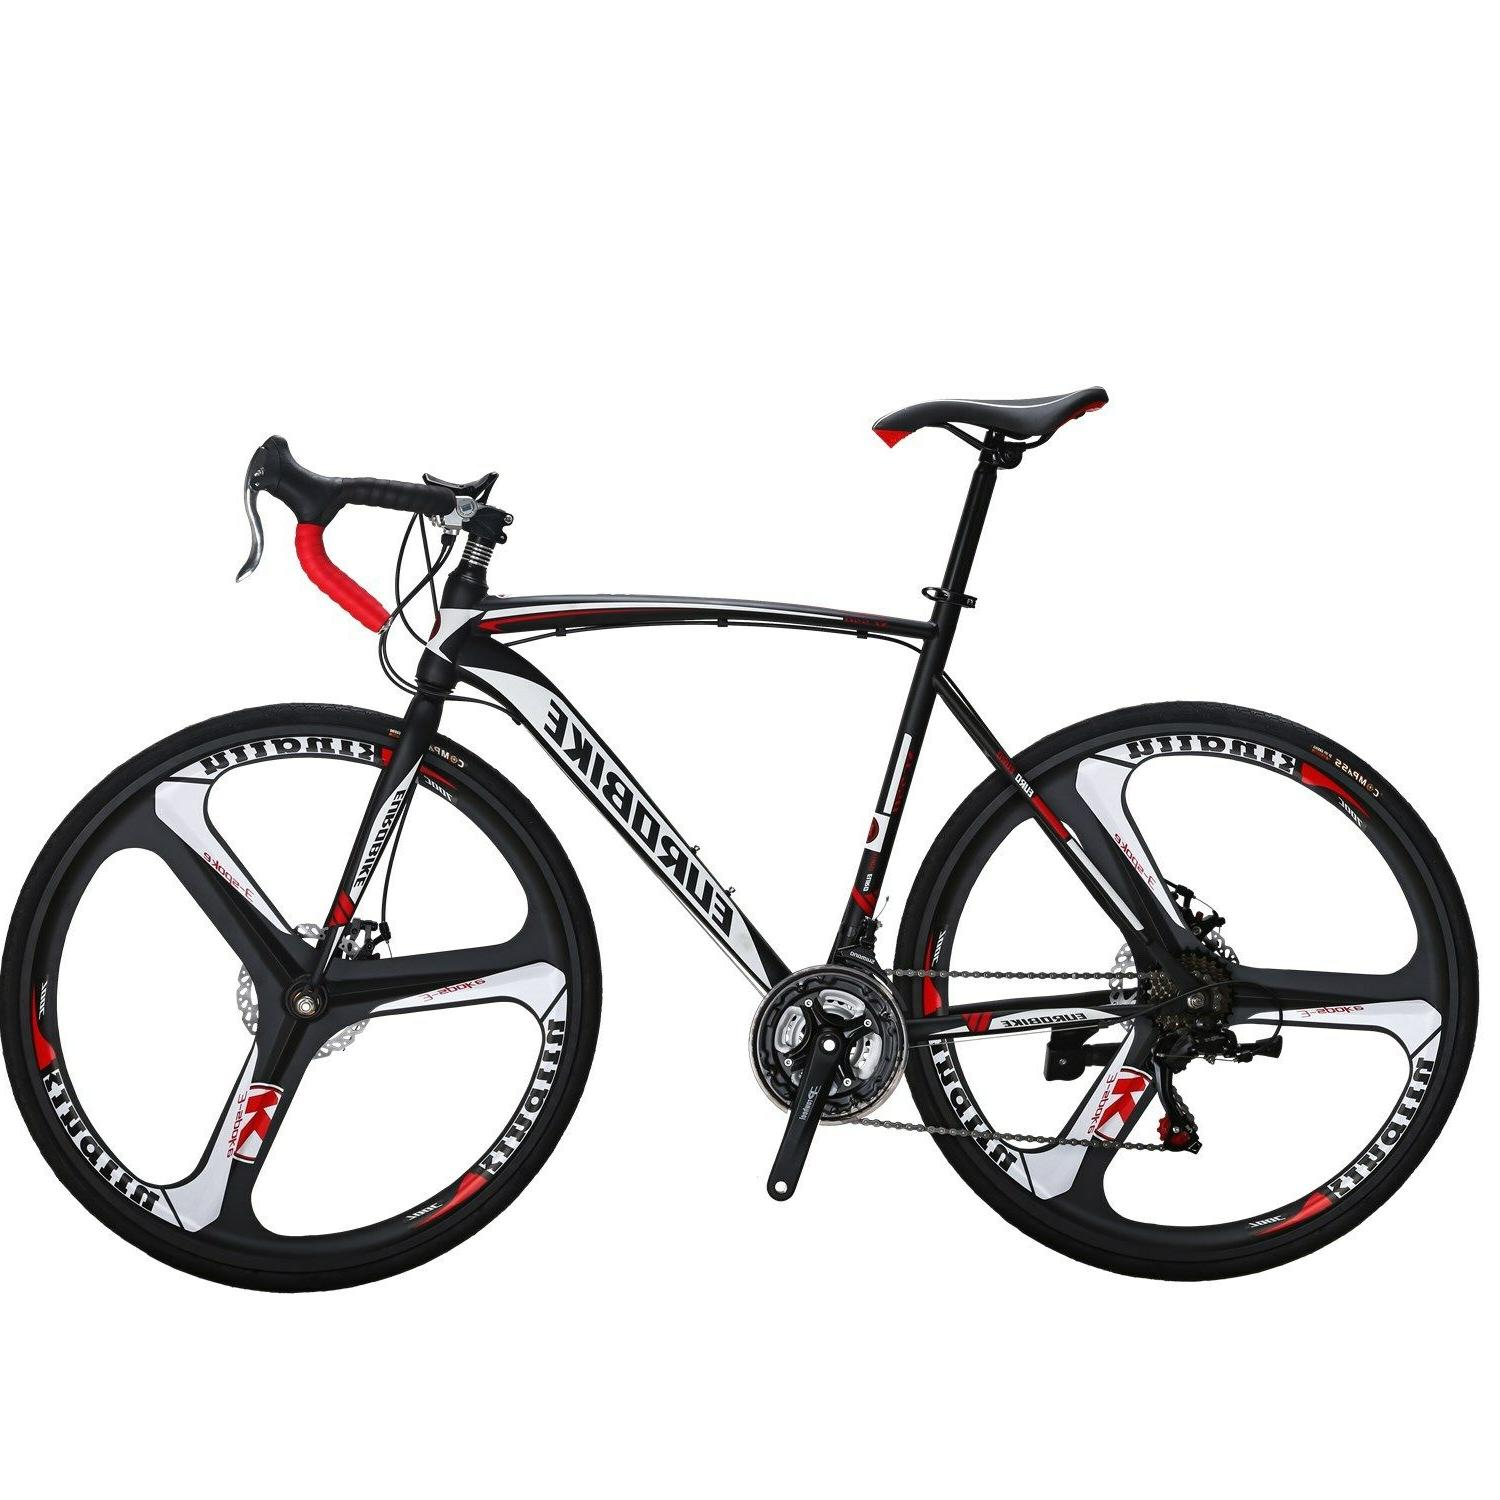 2018 700c road bike mens bikes 21